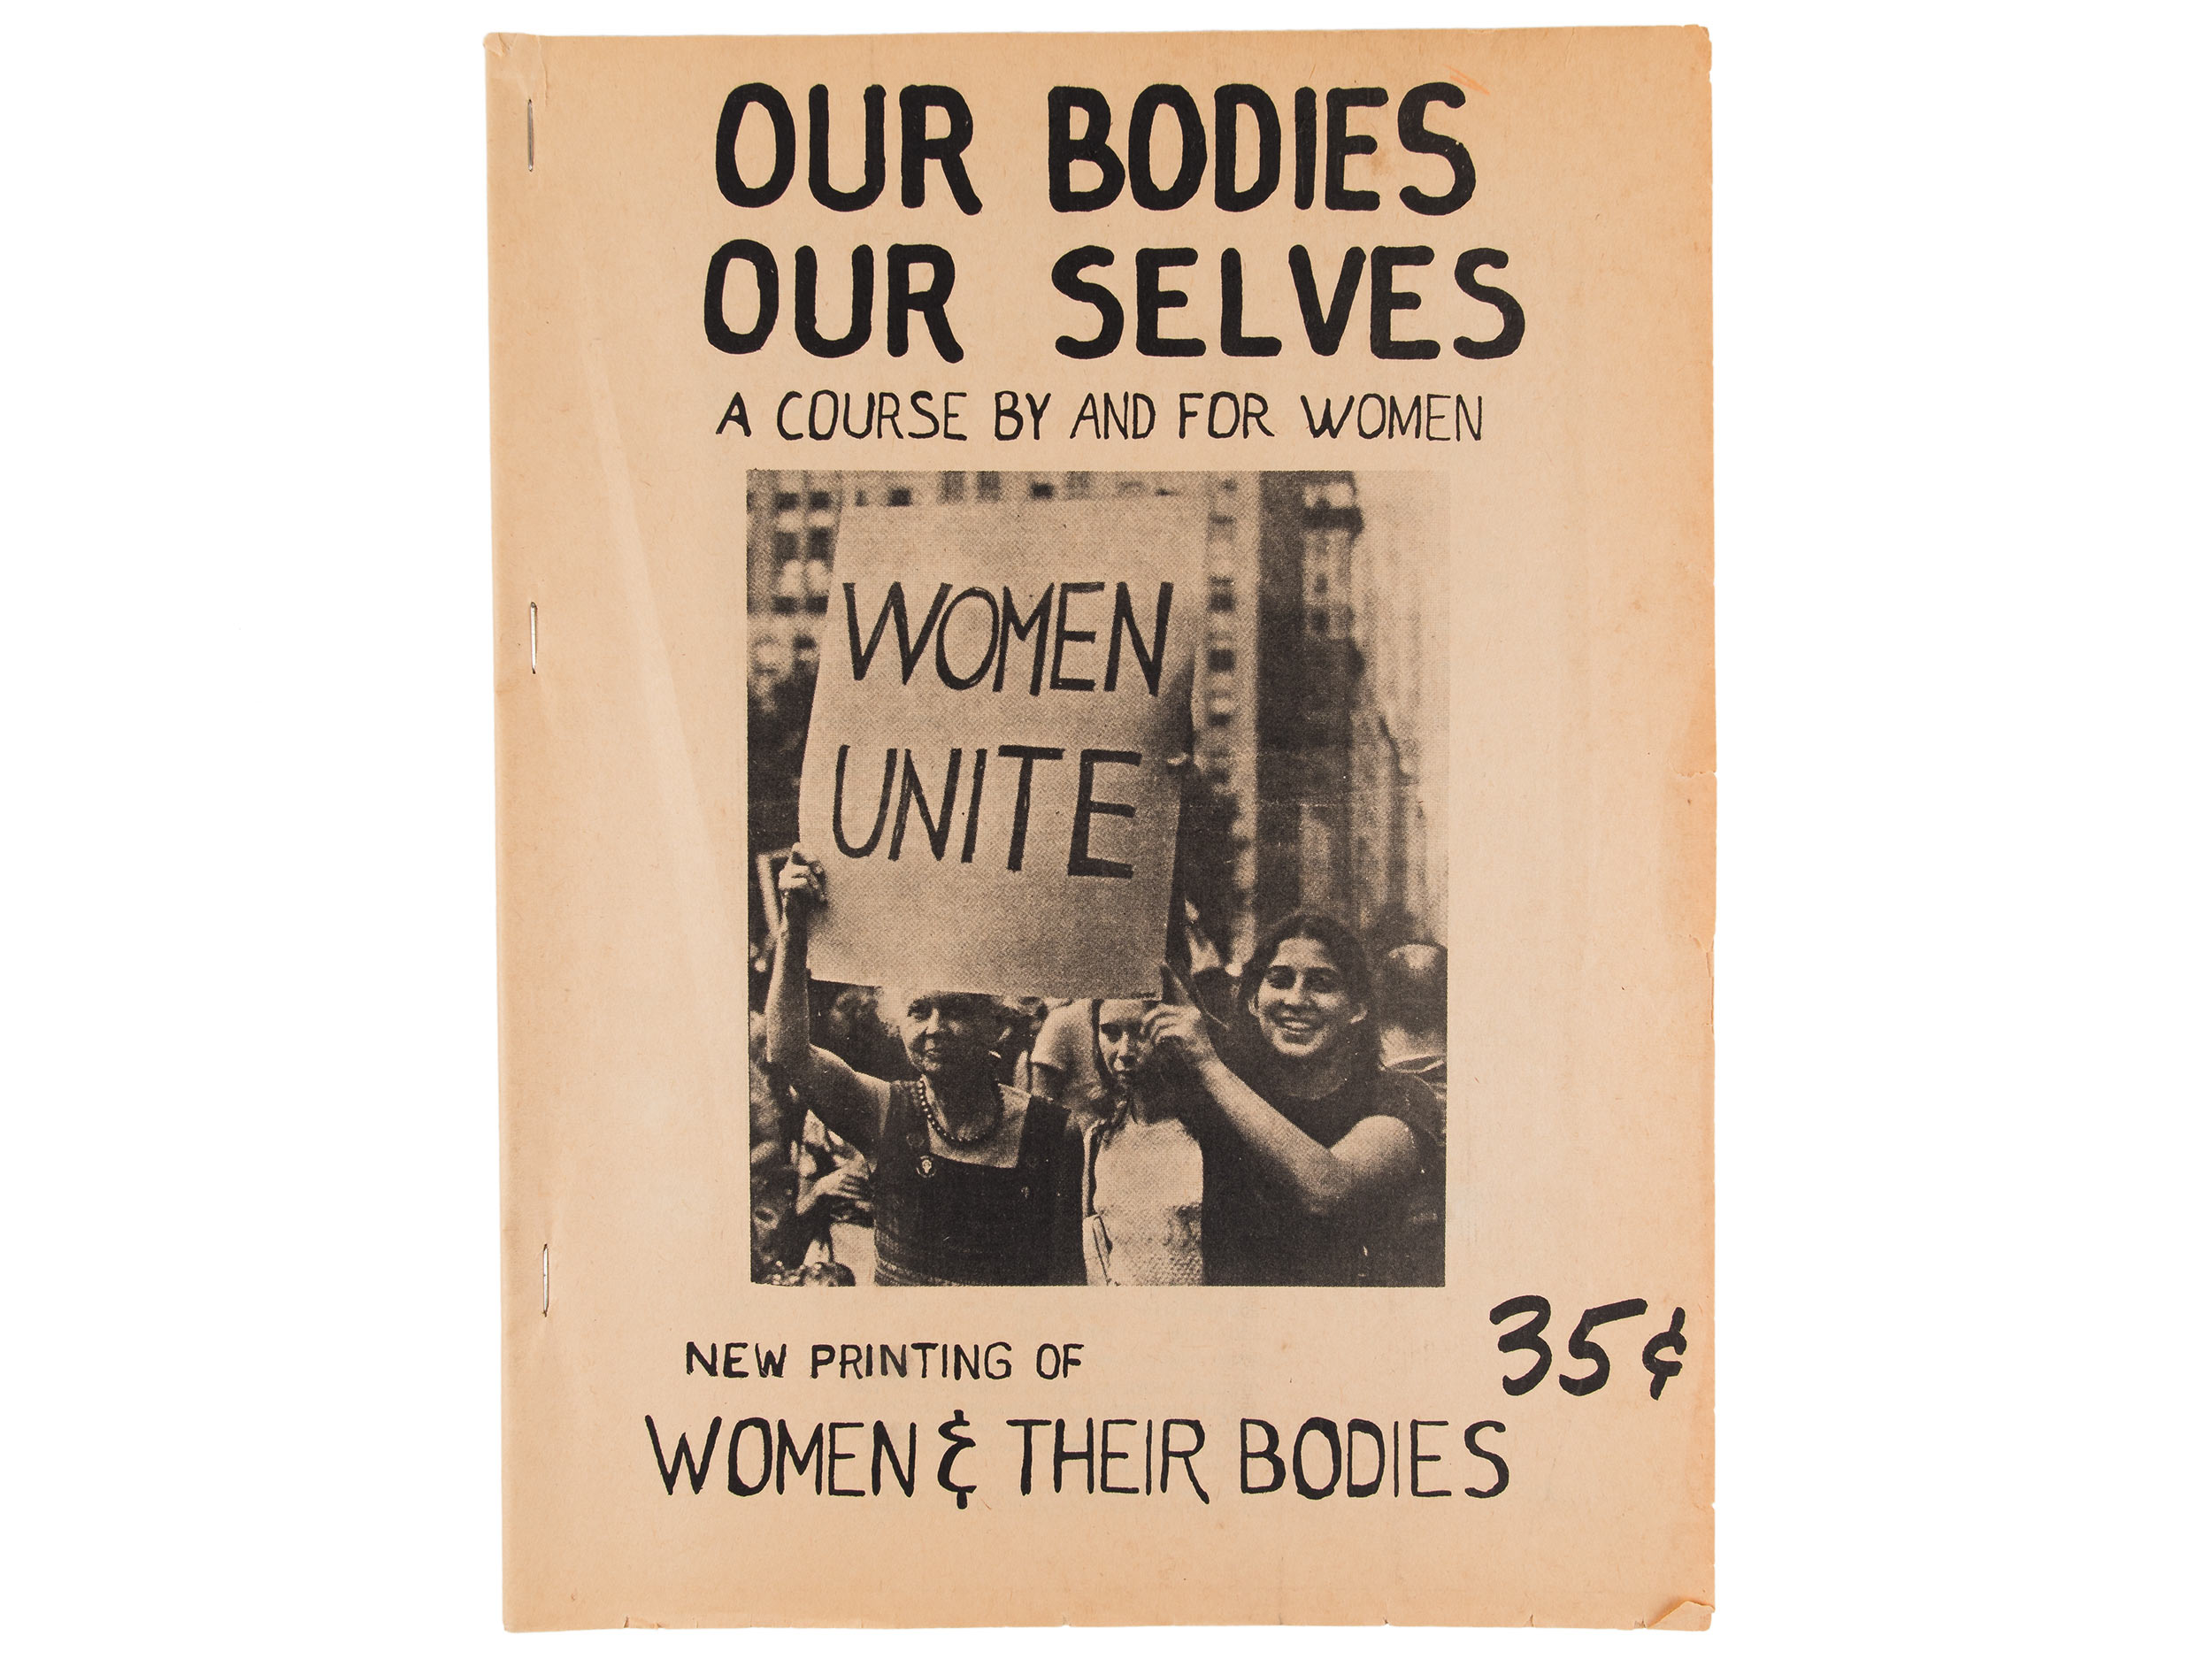 First edition of Our Bodies Our Selves, 1971, and meeting minutes, 1973